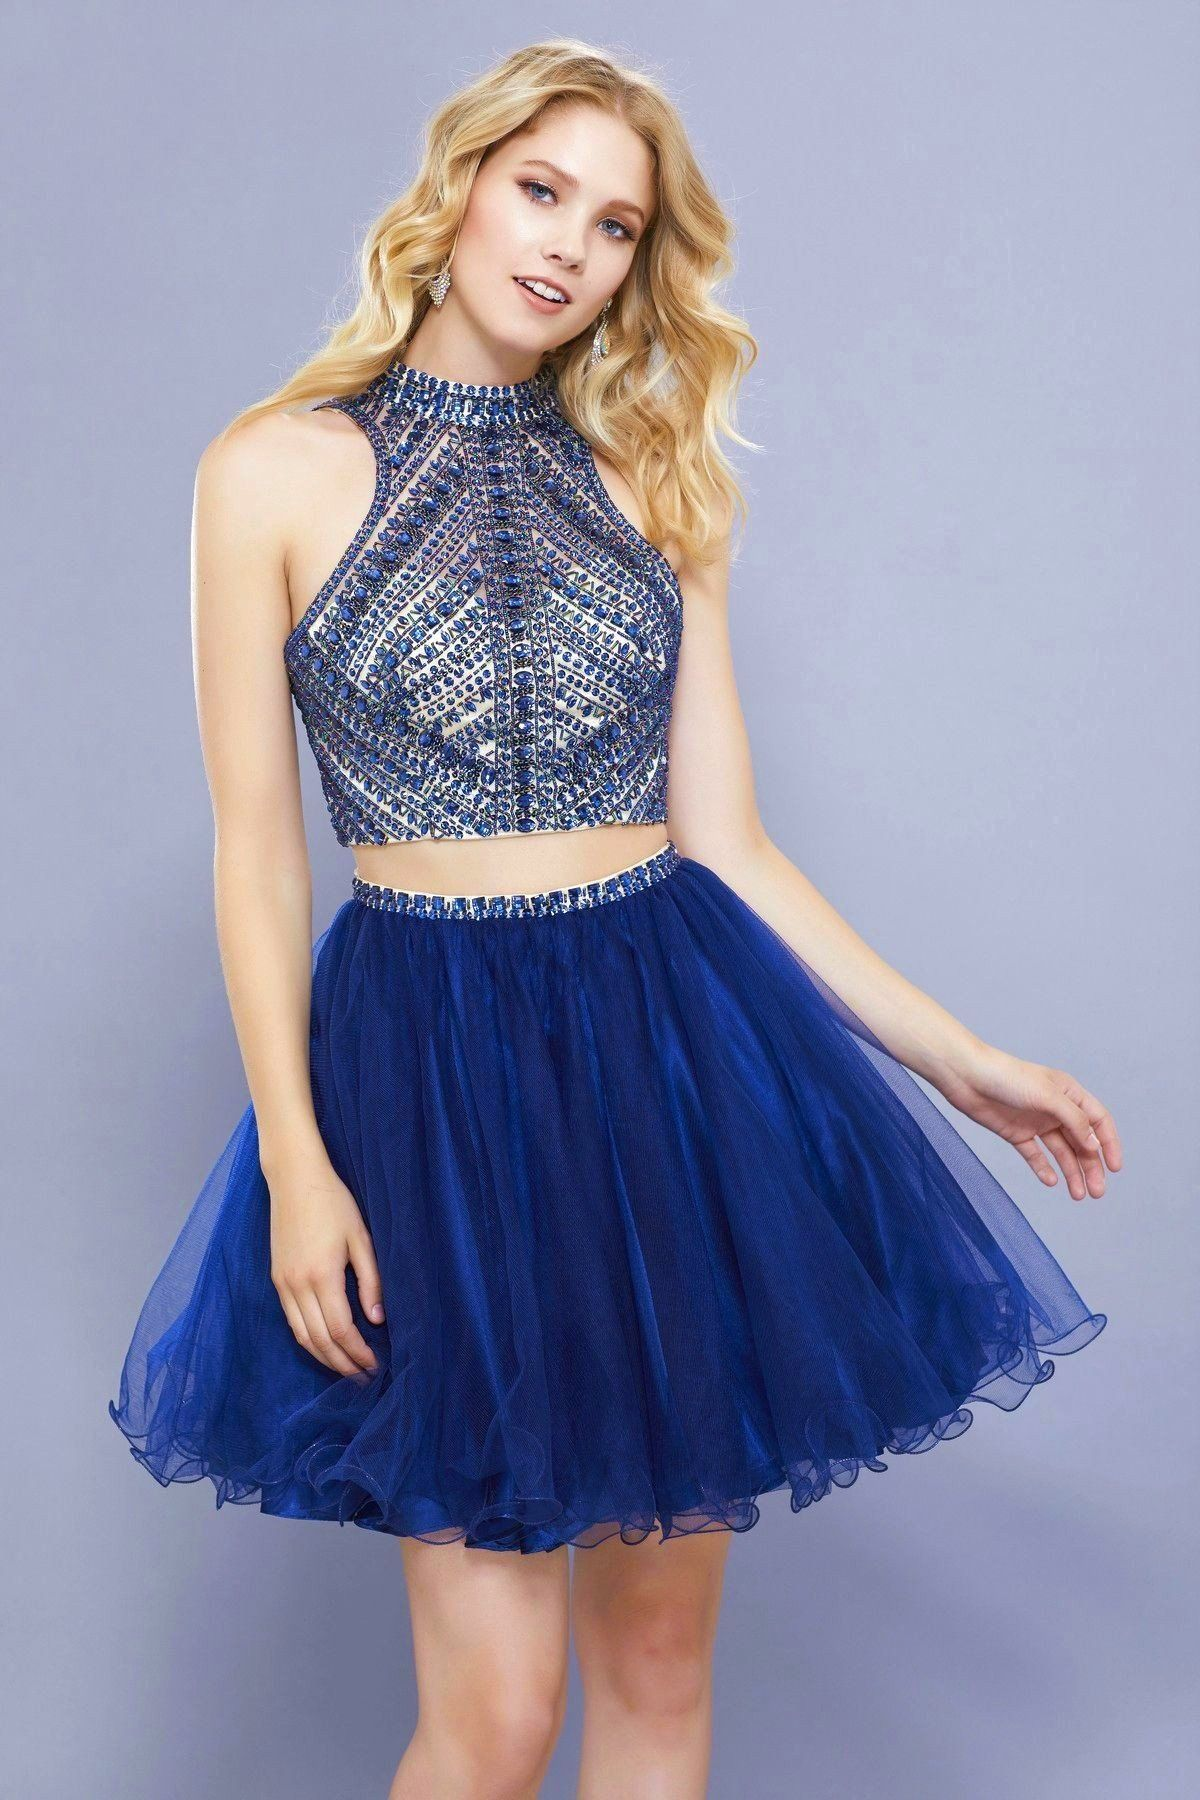 Short two piece dress with beaded top by nox anabel products